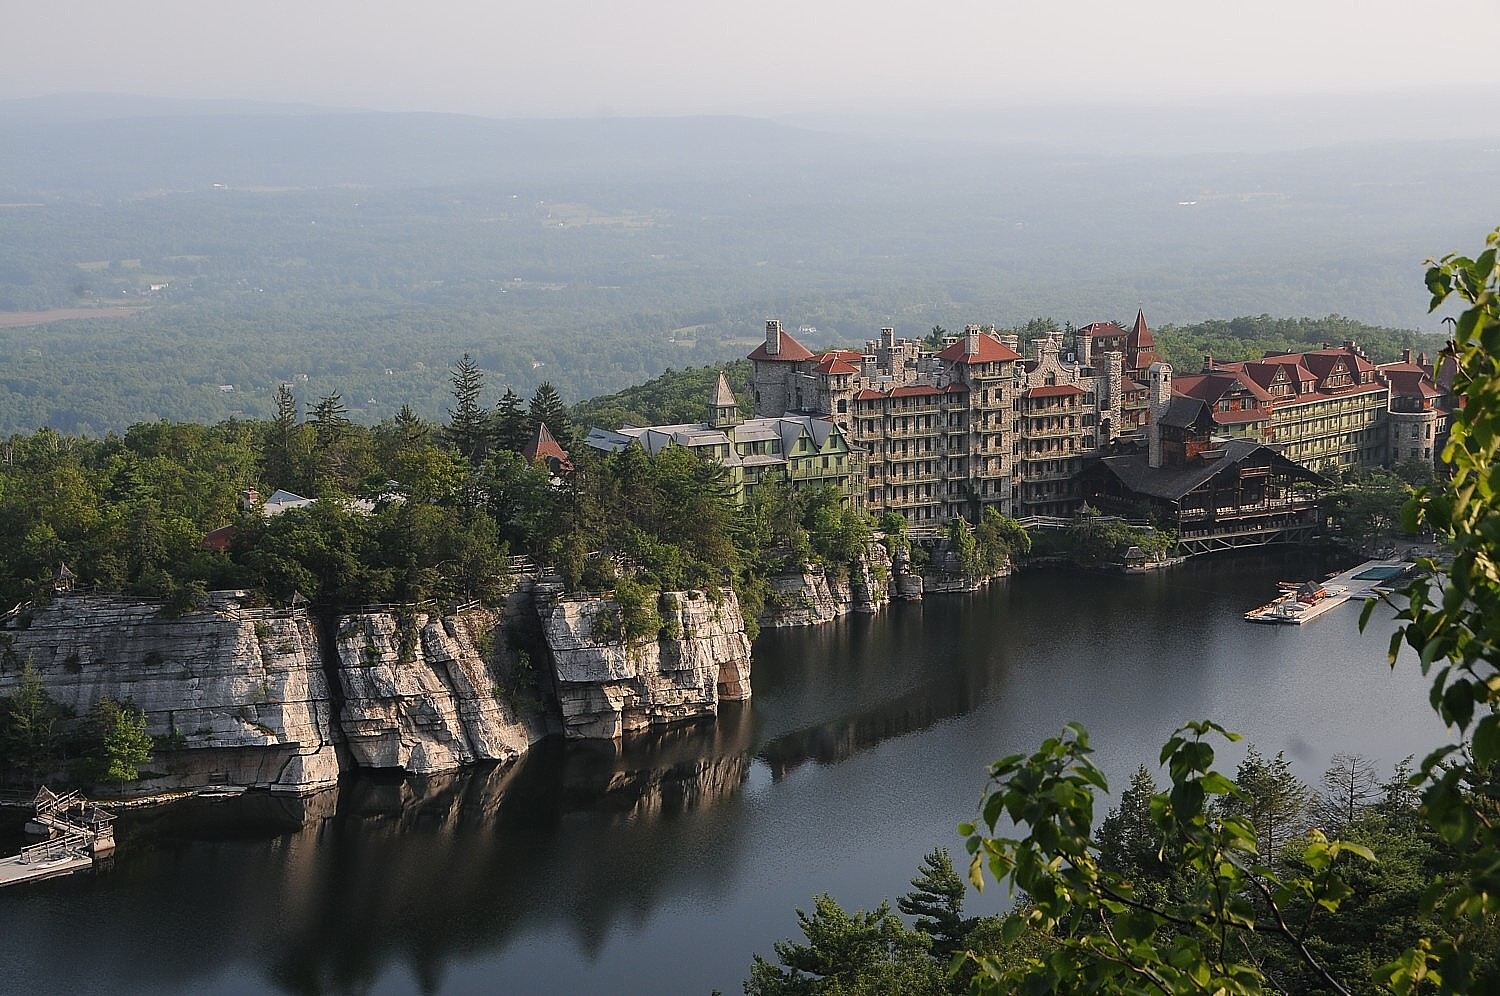 Mohonk Mountain House, New York © 2016 Karen Rubin/goingplacesfarandnear.com